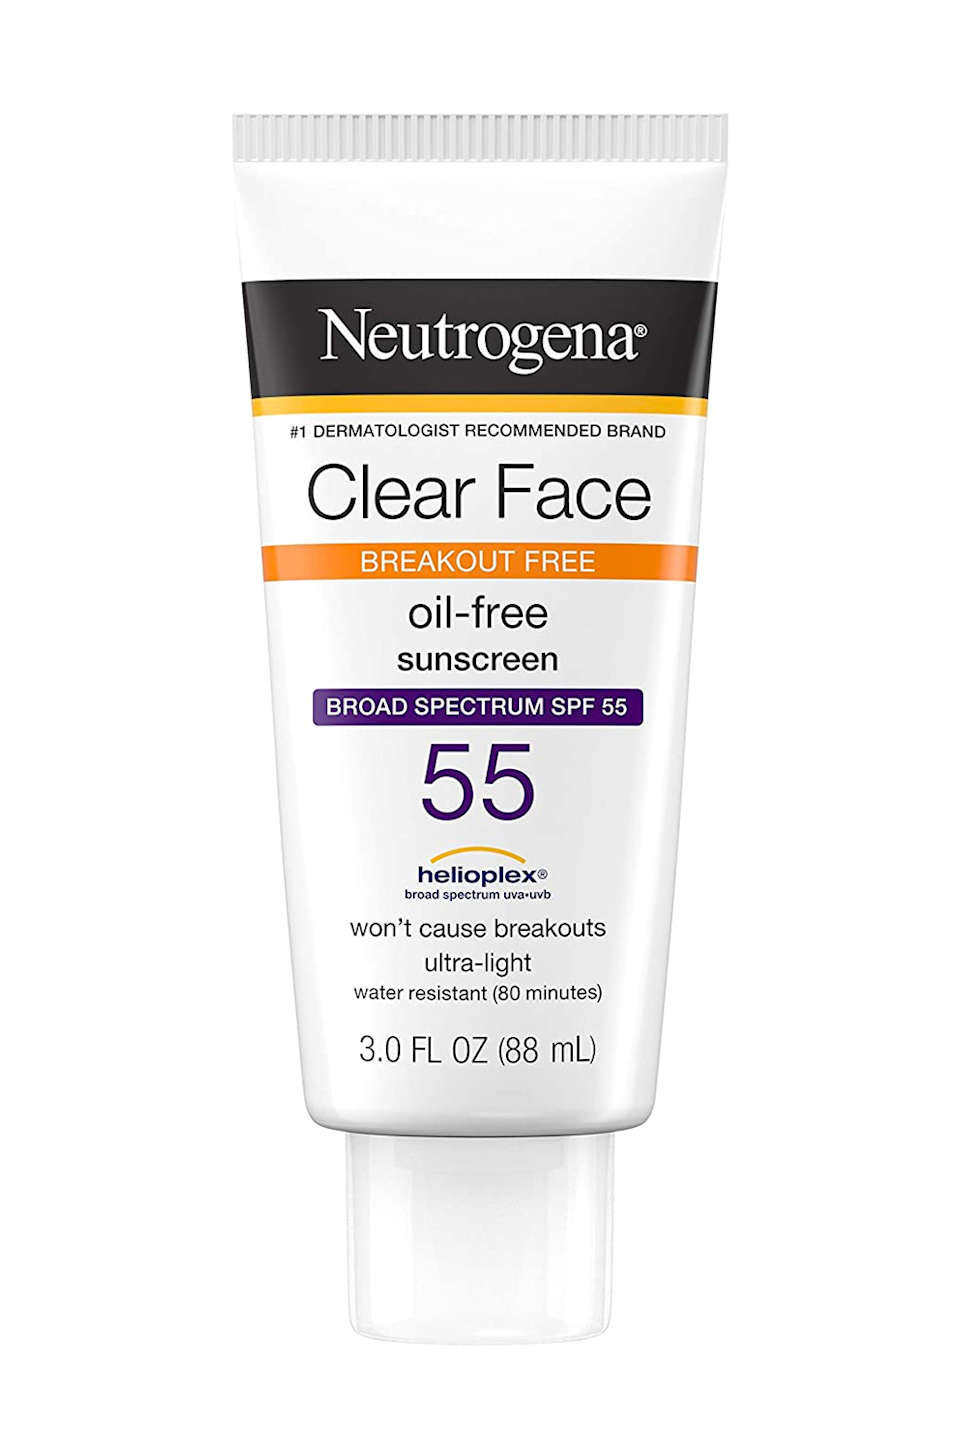 """<p><strong>Neutrogena</strong></p><p>amazon.com</p><p><strong>$10.97</strong></p><p><a href=""""https://www.amazon.com/dp/B004D2826K?tag=syn-yahoo-20&ascsubtag=%5Bartid%7C10049.g.35863427%5Bsrc%7Cyahoo-us"""" rel=""""nofollow noopener"""" target=""""_blank"""" data-ylk=""""slk:Shop Now"""" class=""""link rapid-noclick-resp"""">Shop Now</a></p><p>Even though the majority of sunscreens can irritate <a href=""""https://www.cosmopolitan.com/style-beauty/beauty/a30420426/cosmopolitan-acne-newsletter/"""" rel=""""nofollow noopener"""" target=""""_blank"""" data-ylk=""""slk:acne-prone skin"""" class=""""link rapid-noclick-resp"""">acne-prone skin</a> (see: clogged pores and <em>more</em> zits and breakouts), this drugstore formula is a safe bet. It's oil-free, lightweight, and it <strong>l</strong><strong>eaves you with a matte, water-resistant finish</strong> for up to 80 minutes (after which you'll need to reapply it, btw).</p>"""